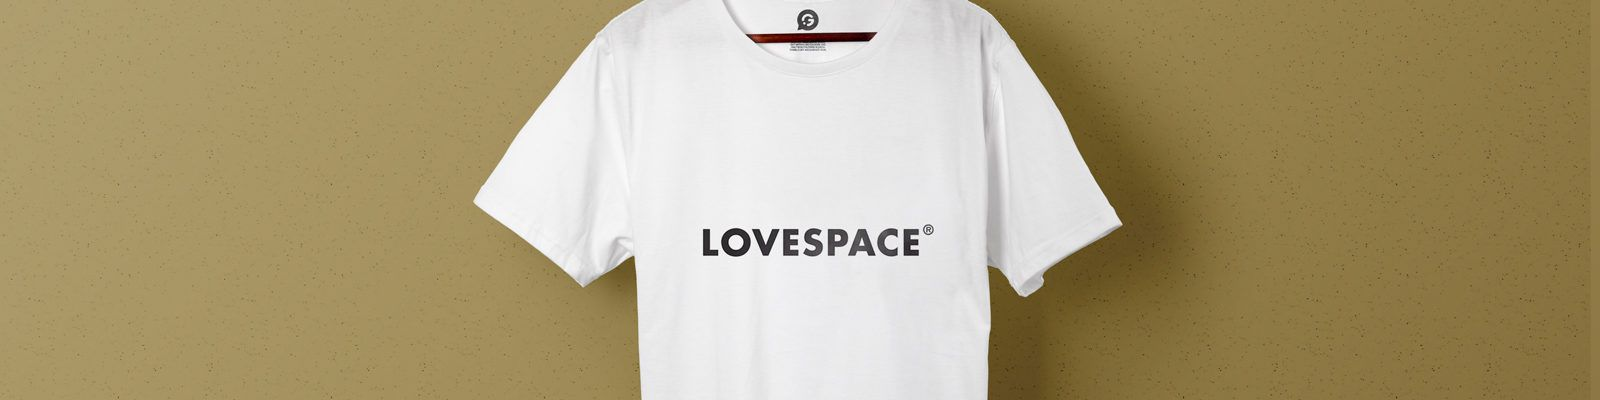 Printed T-Shirts for Student Storage Services, LOVESPACE - Header Image